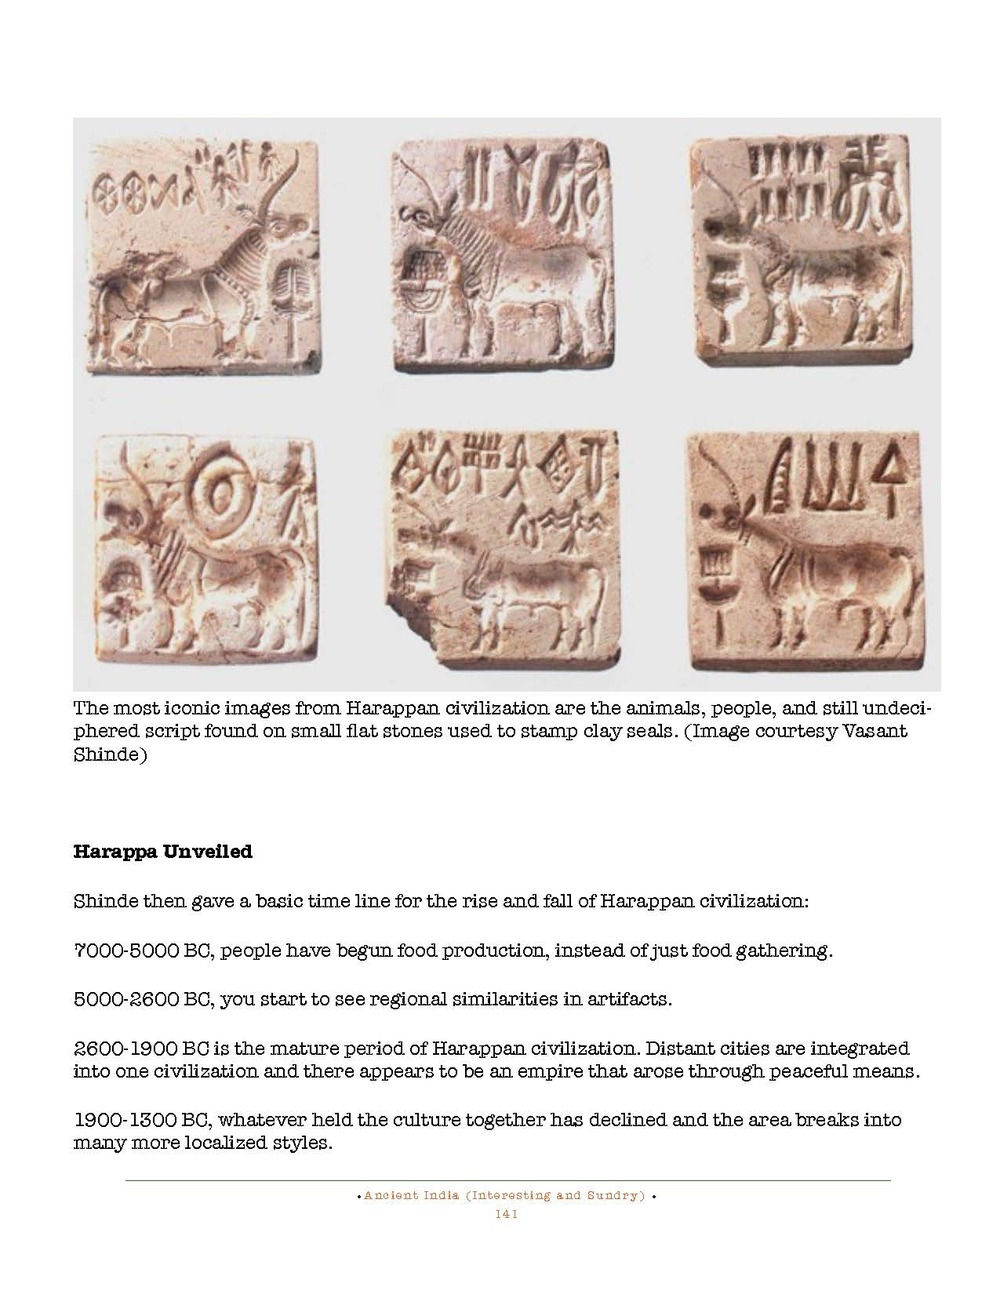 HOCE- Ancient India Notes (Other Interesting and Sundry)_Page_141.jpg